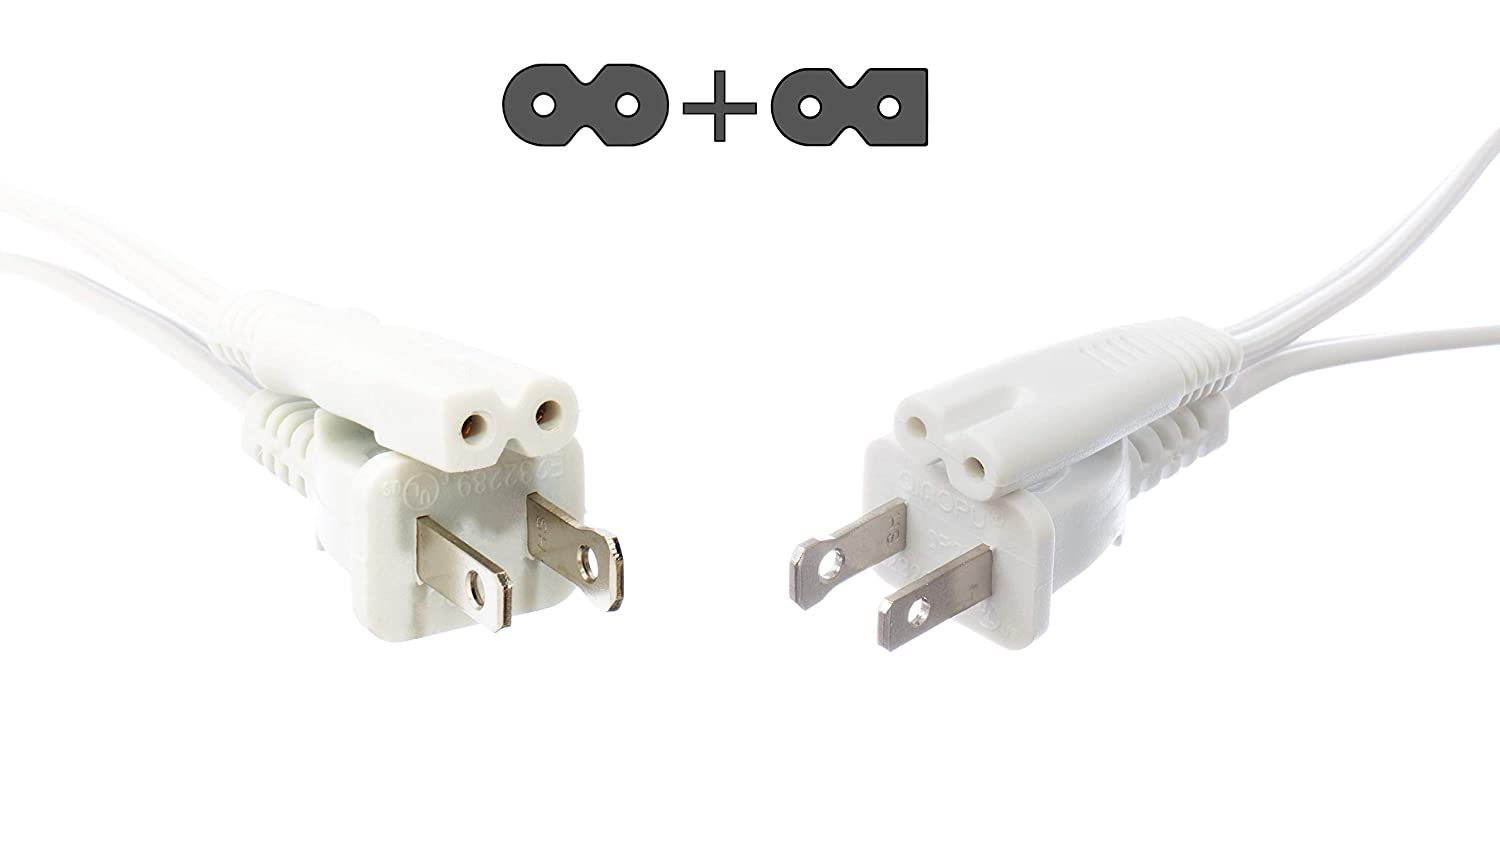 USB replacement end cable end 2 PACK